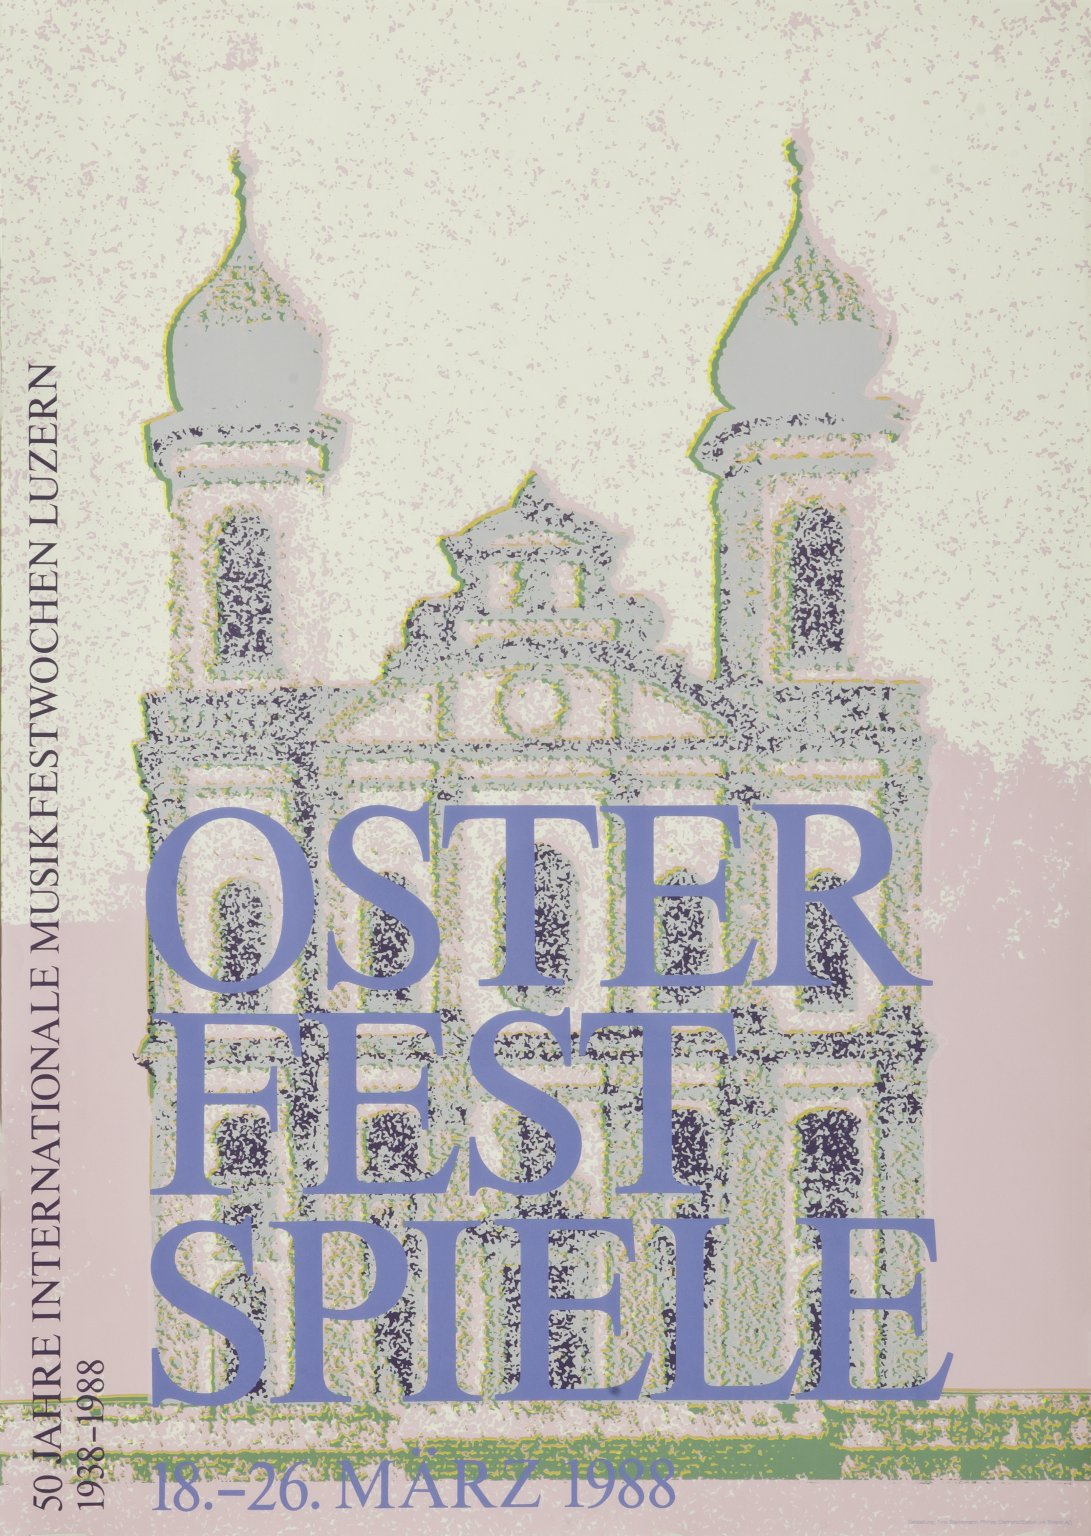 Oster Fest Spiele